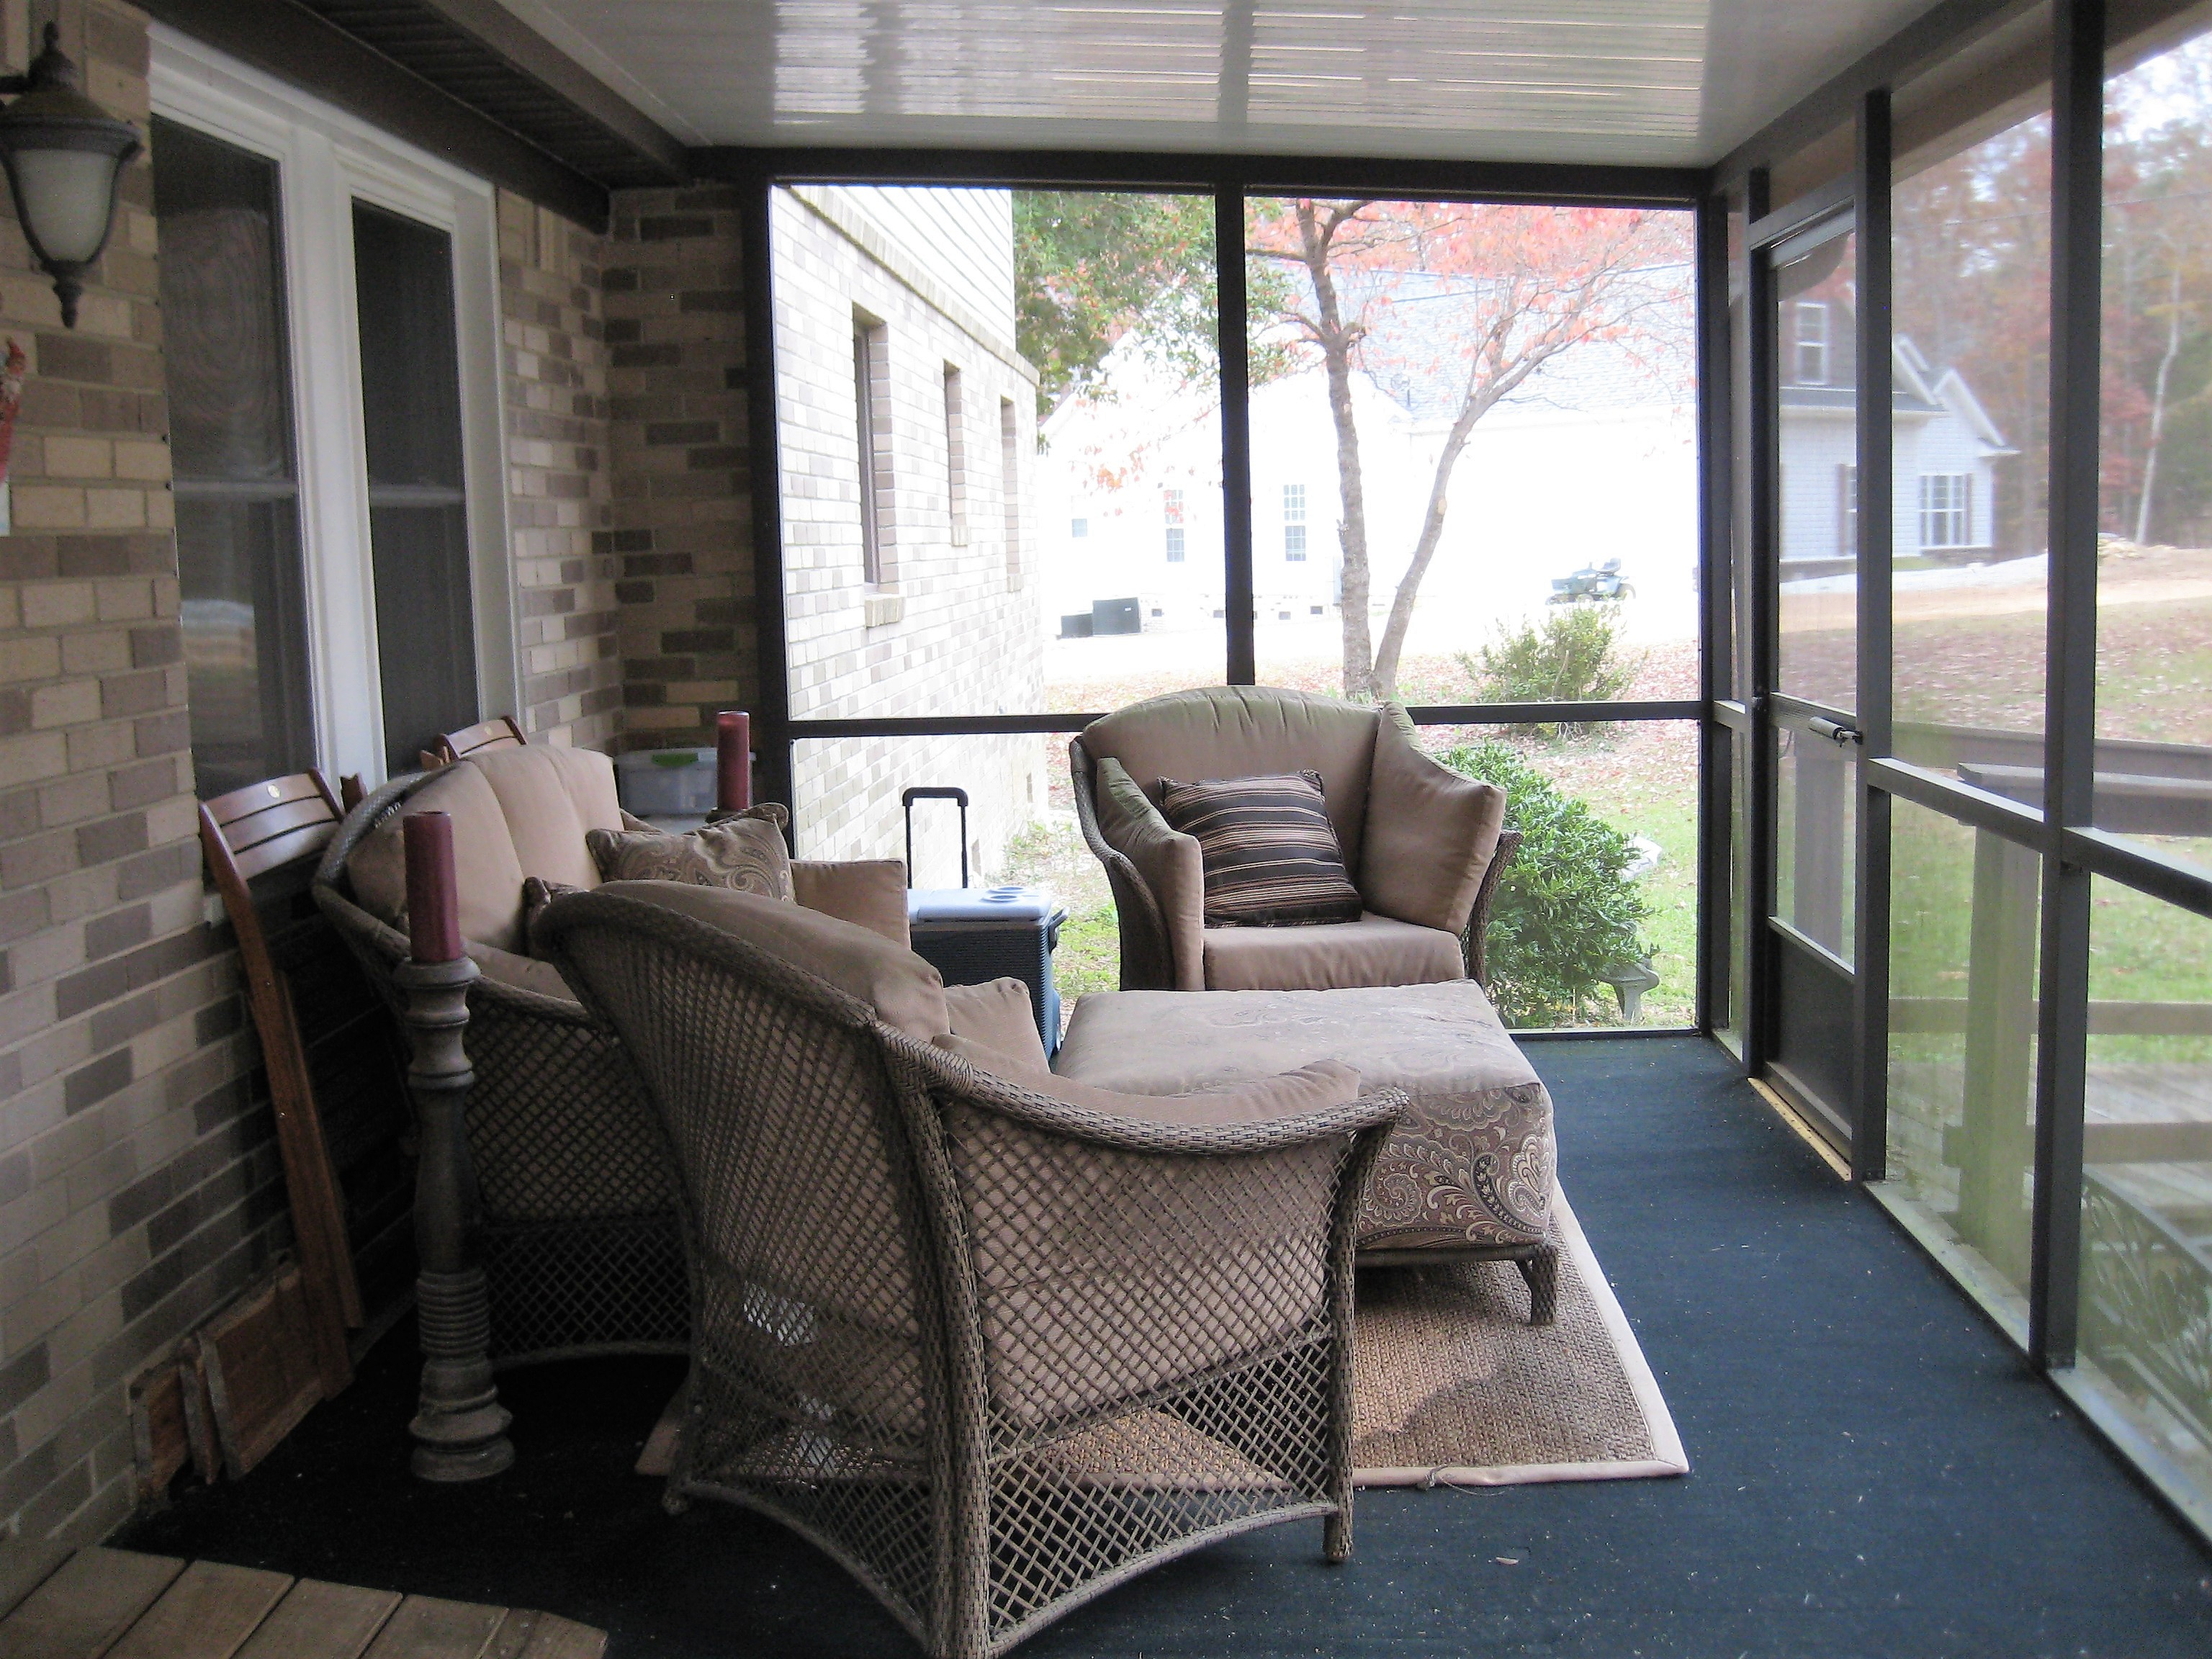 Keep the BUGS out in this screened porch